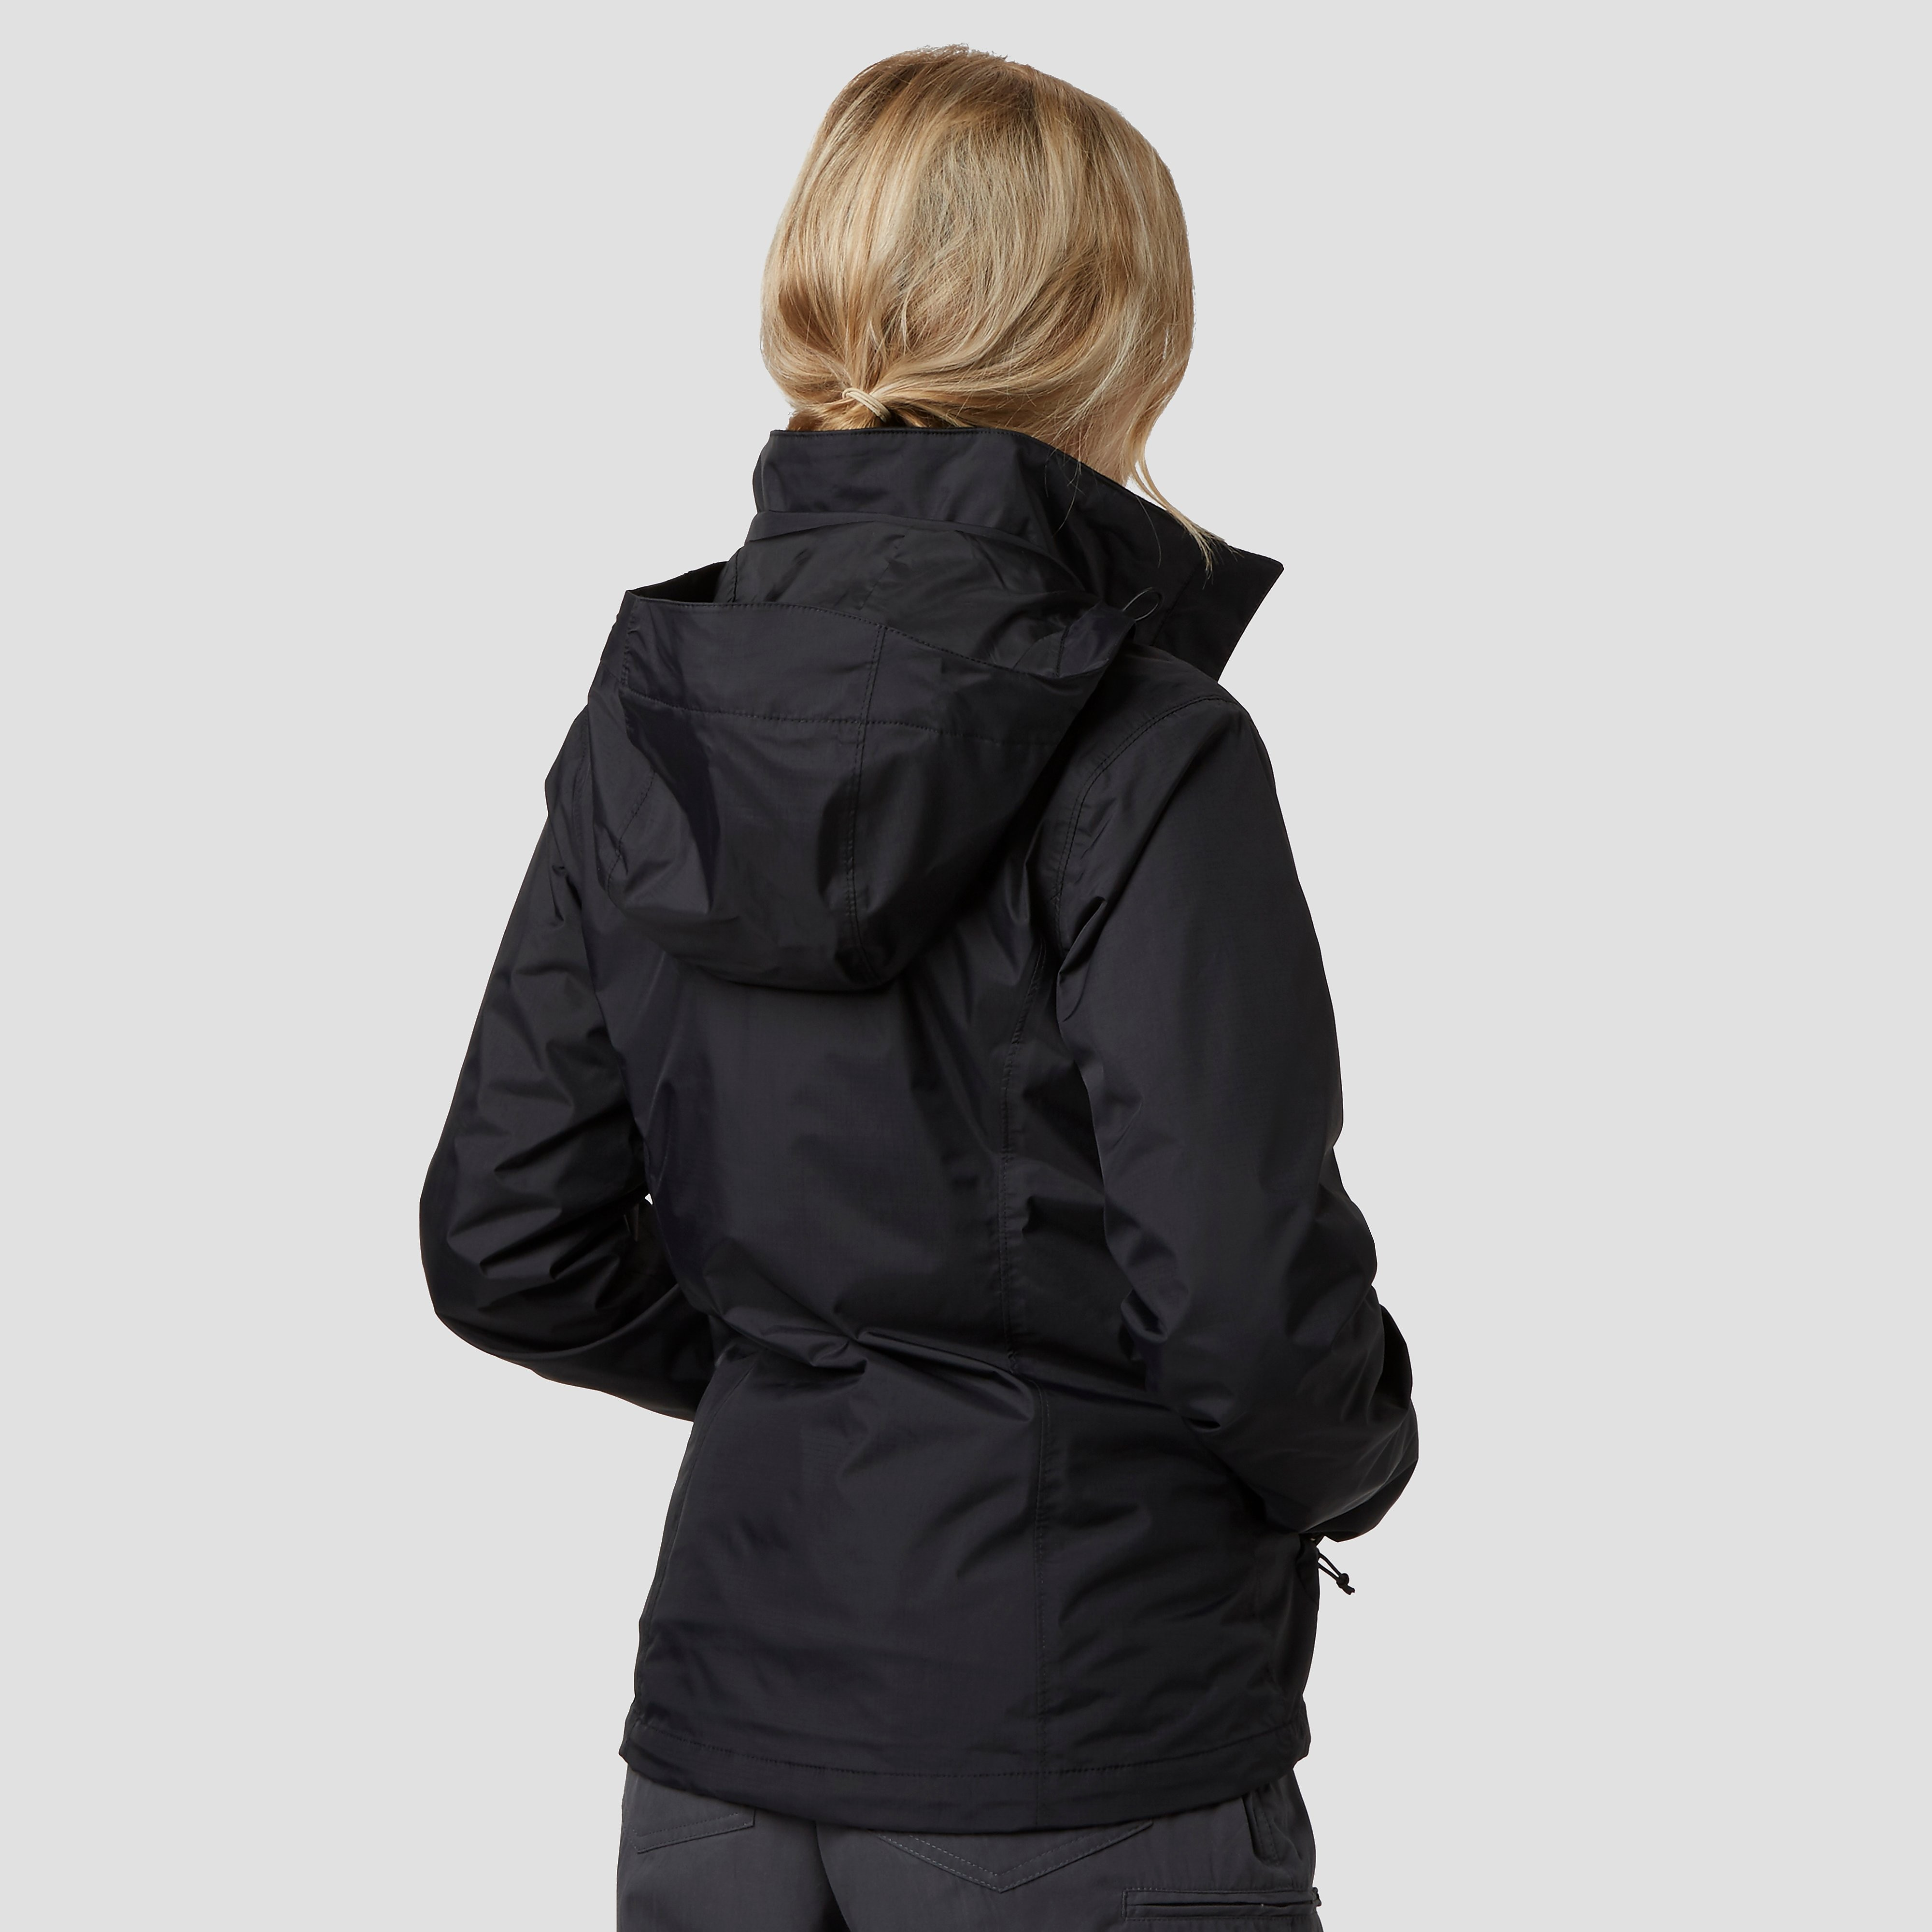 The North Face Women's Resolve DryVent Jacket